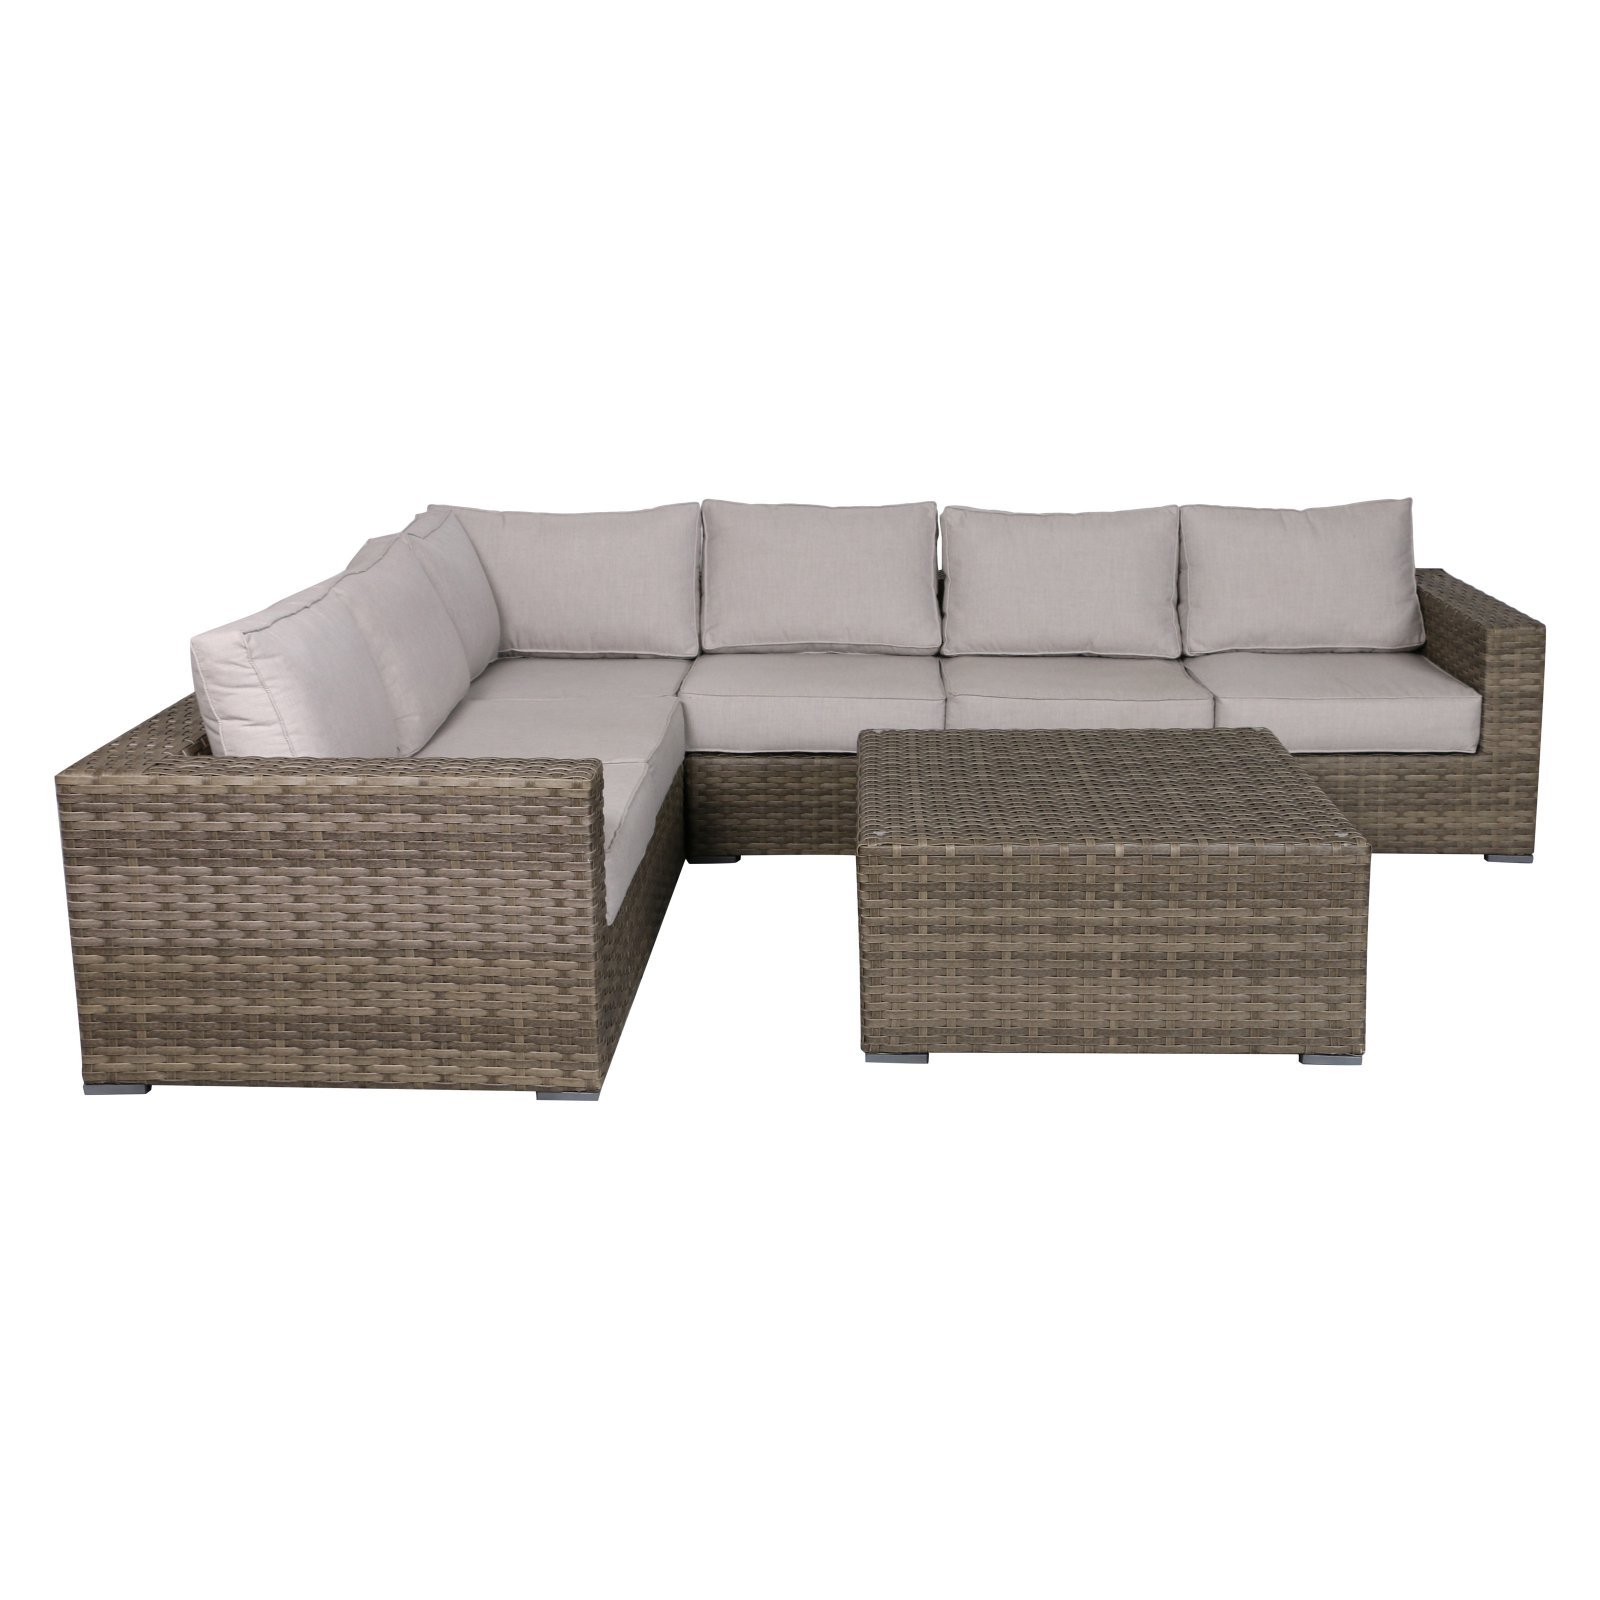 Teva Patio Bali Outdoor Wicker Sectional Sofa With Ottoman